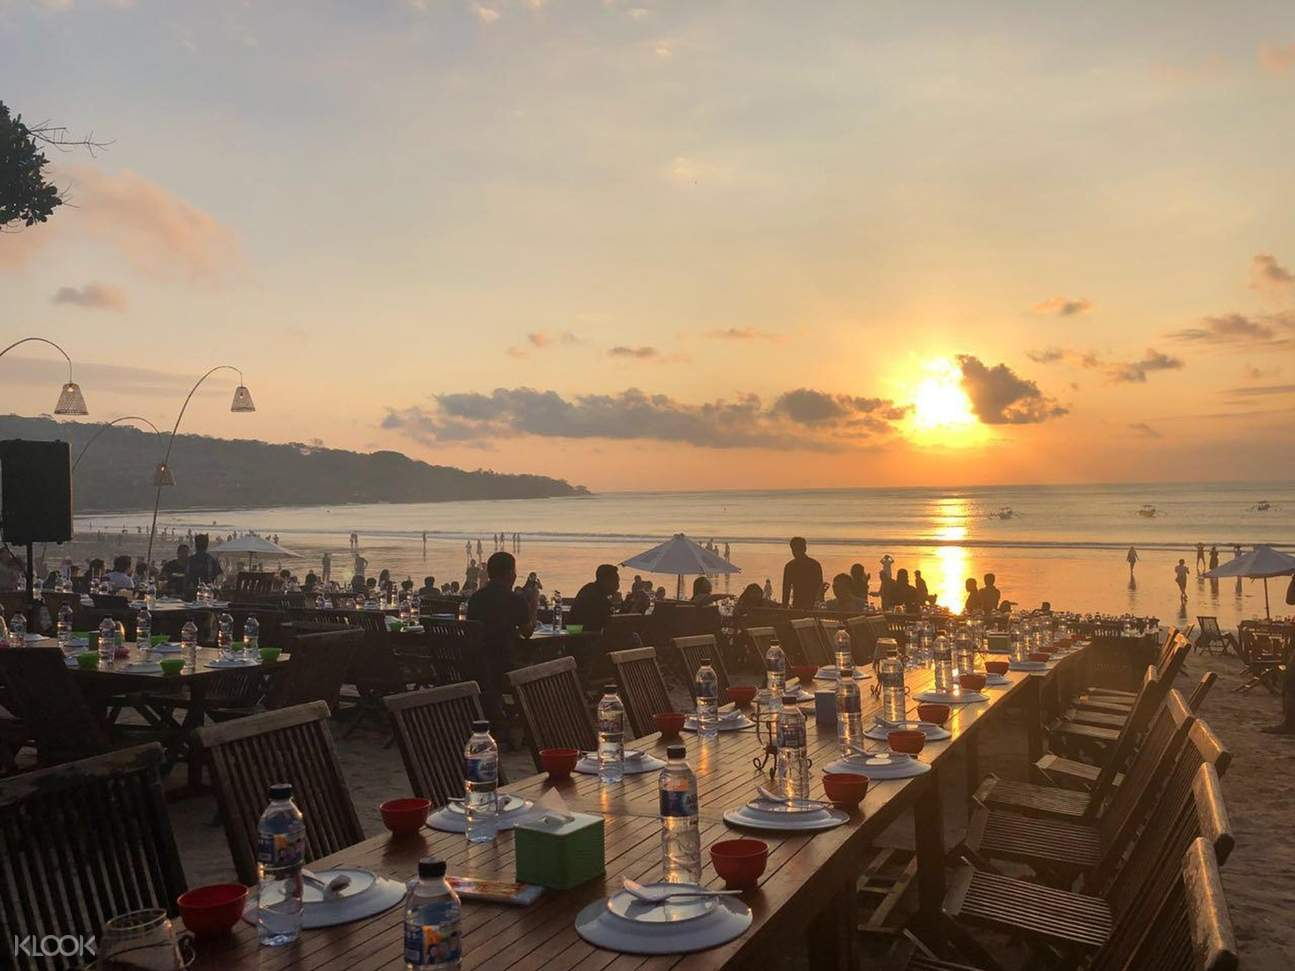 sunset in bali with tables